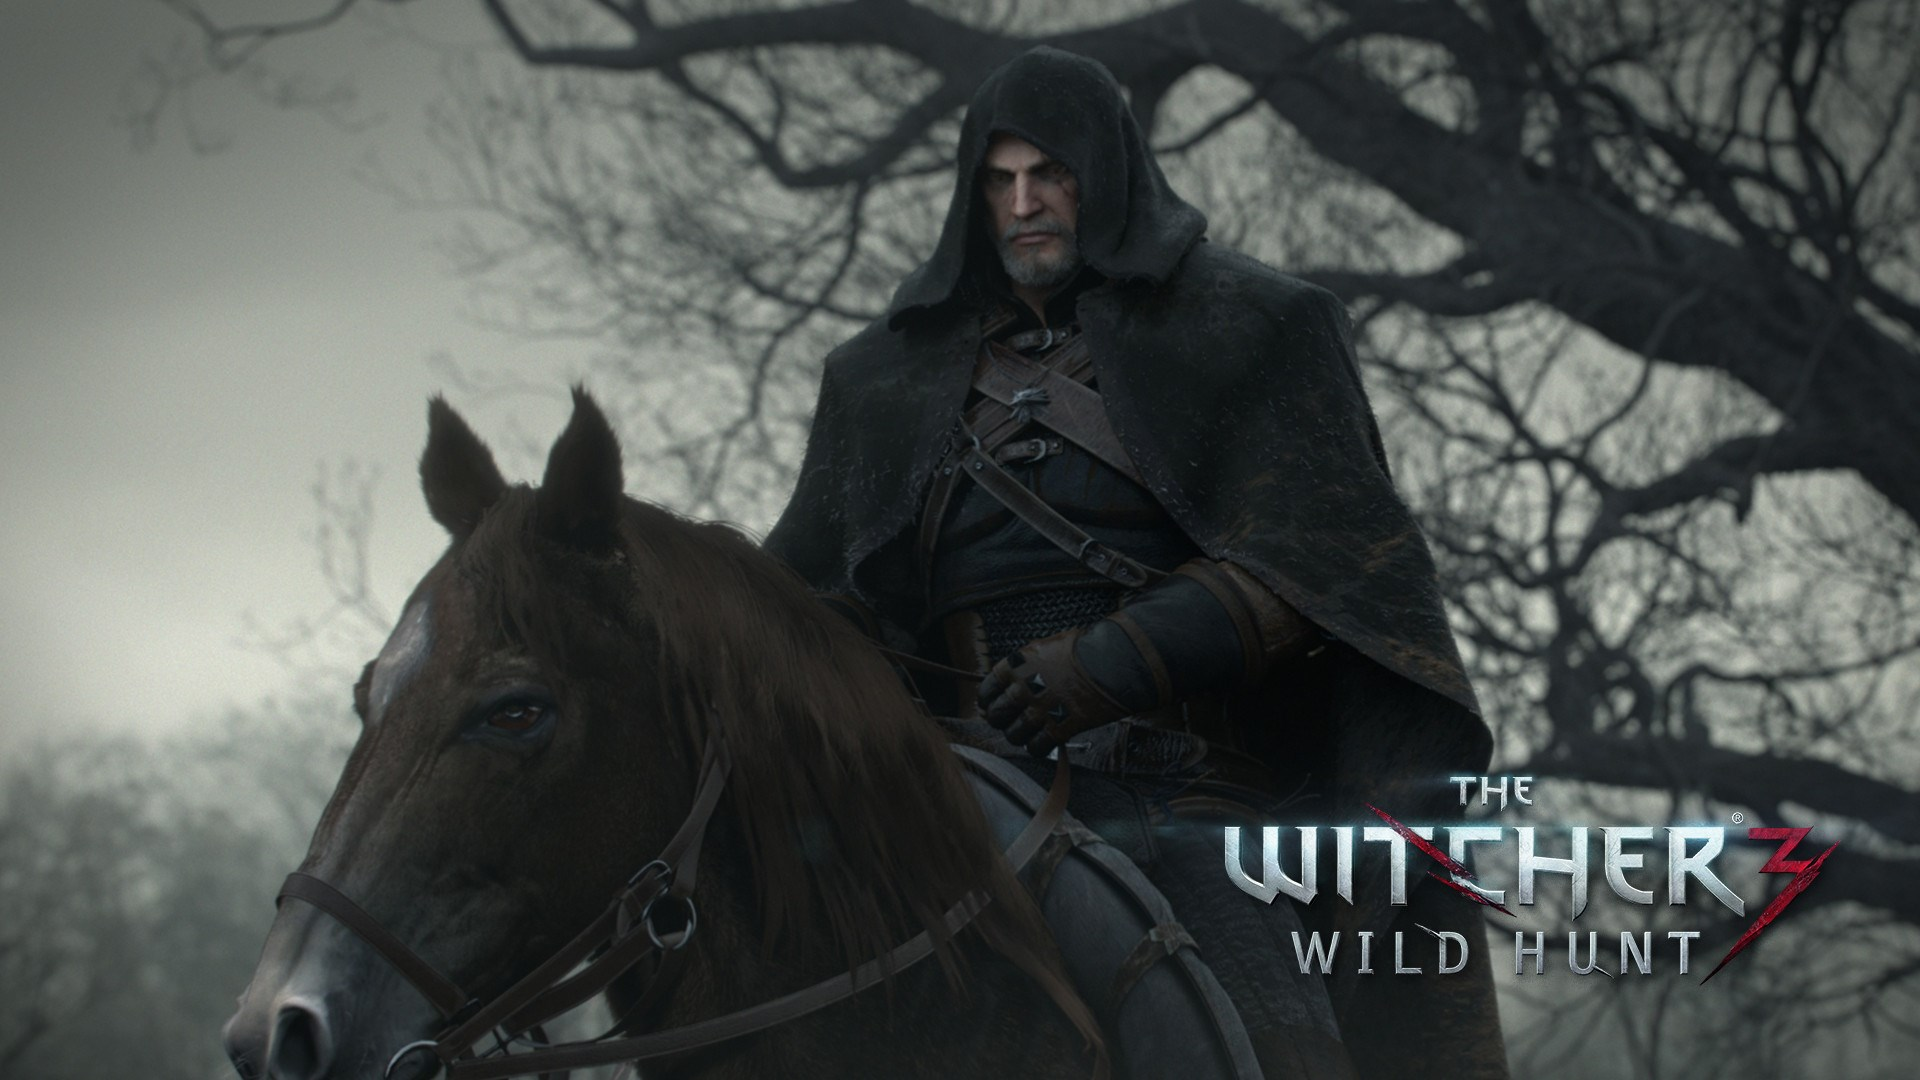 1920x1080-free-desktop-downloads-the-witcher-wild-hunt-wallpaper-wpc580727